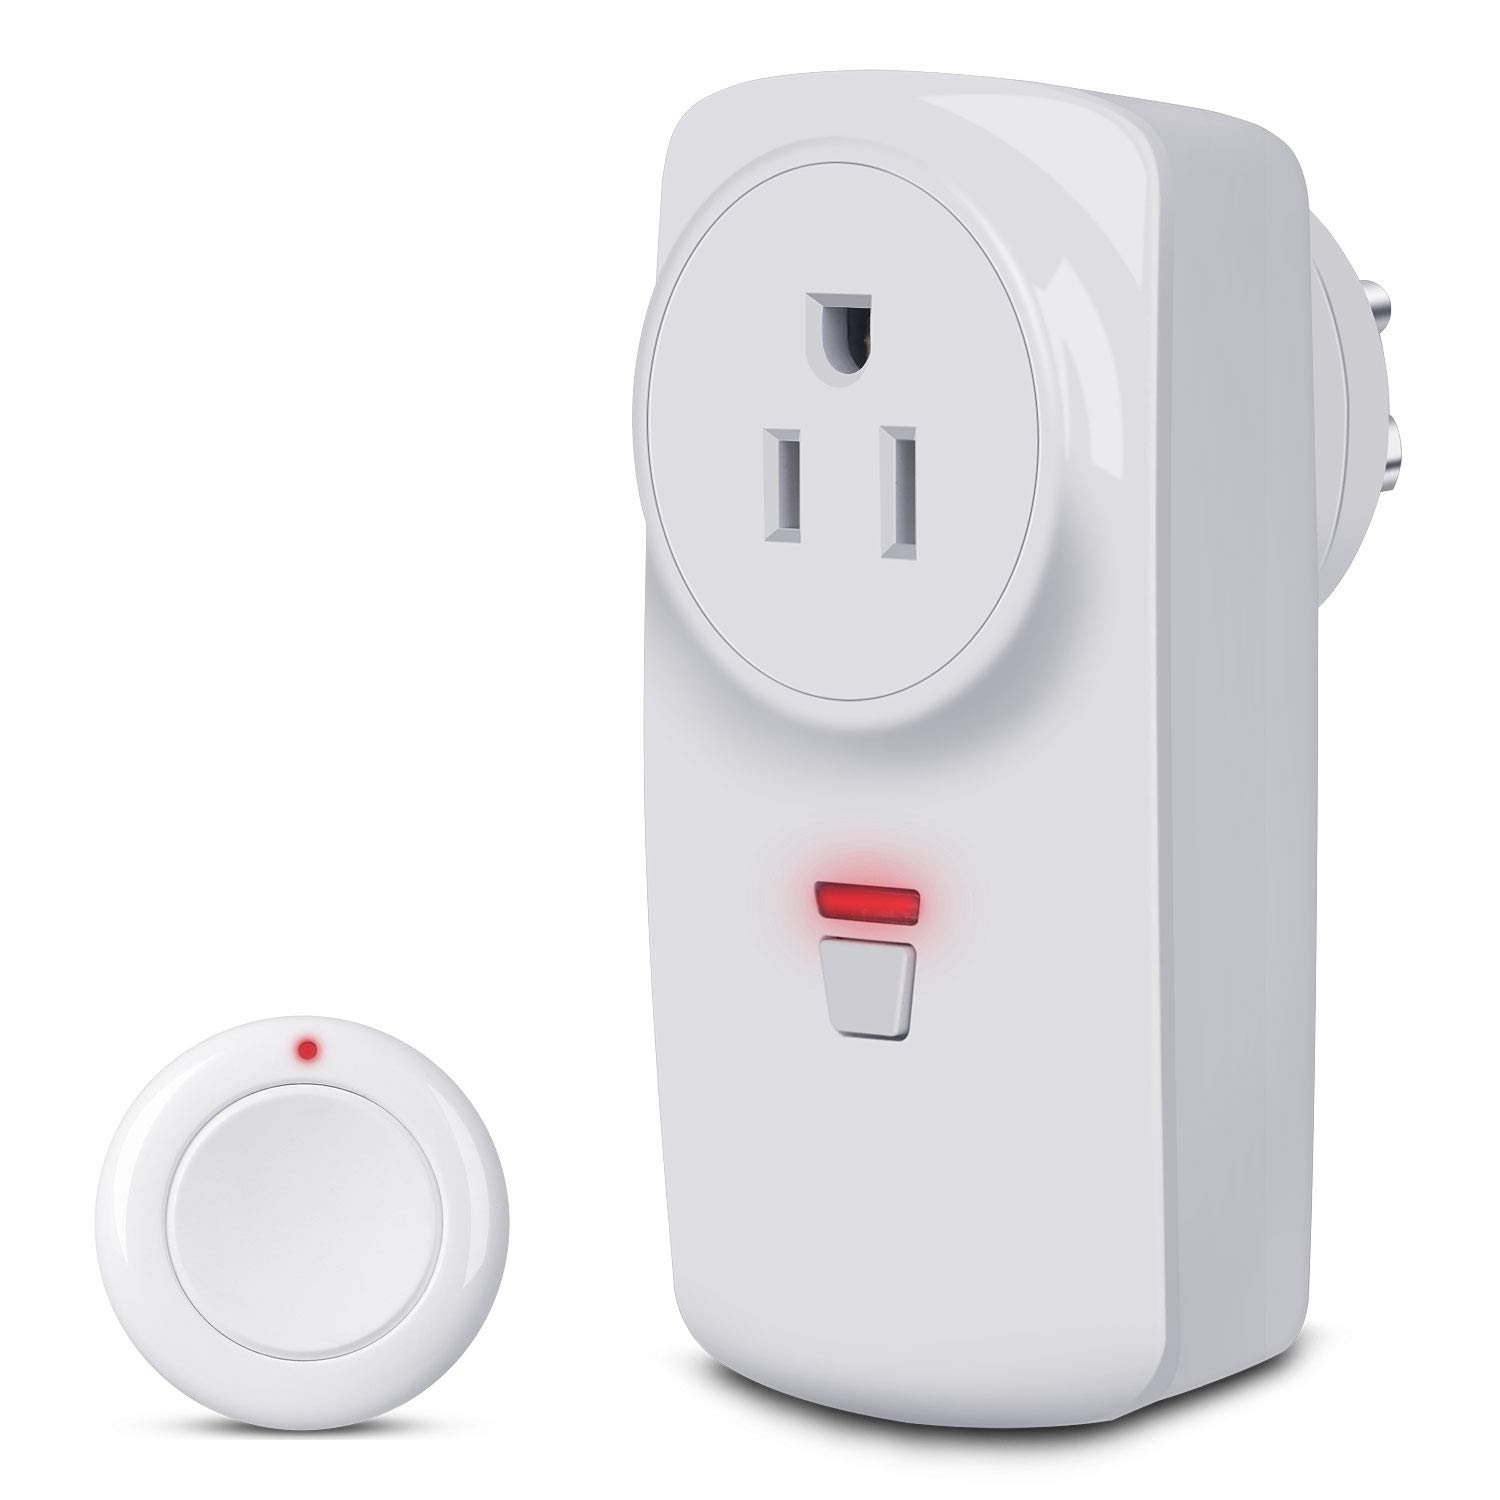 Garbage Disposal Wireless Air Switch No Drilling On Sink Top Wiring To Light Free Download Stick Counter Compatible With Any Unit Under 3 4 Hp